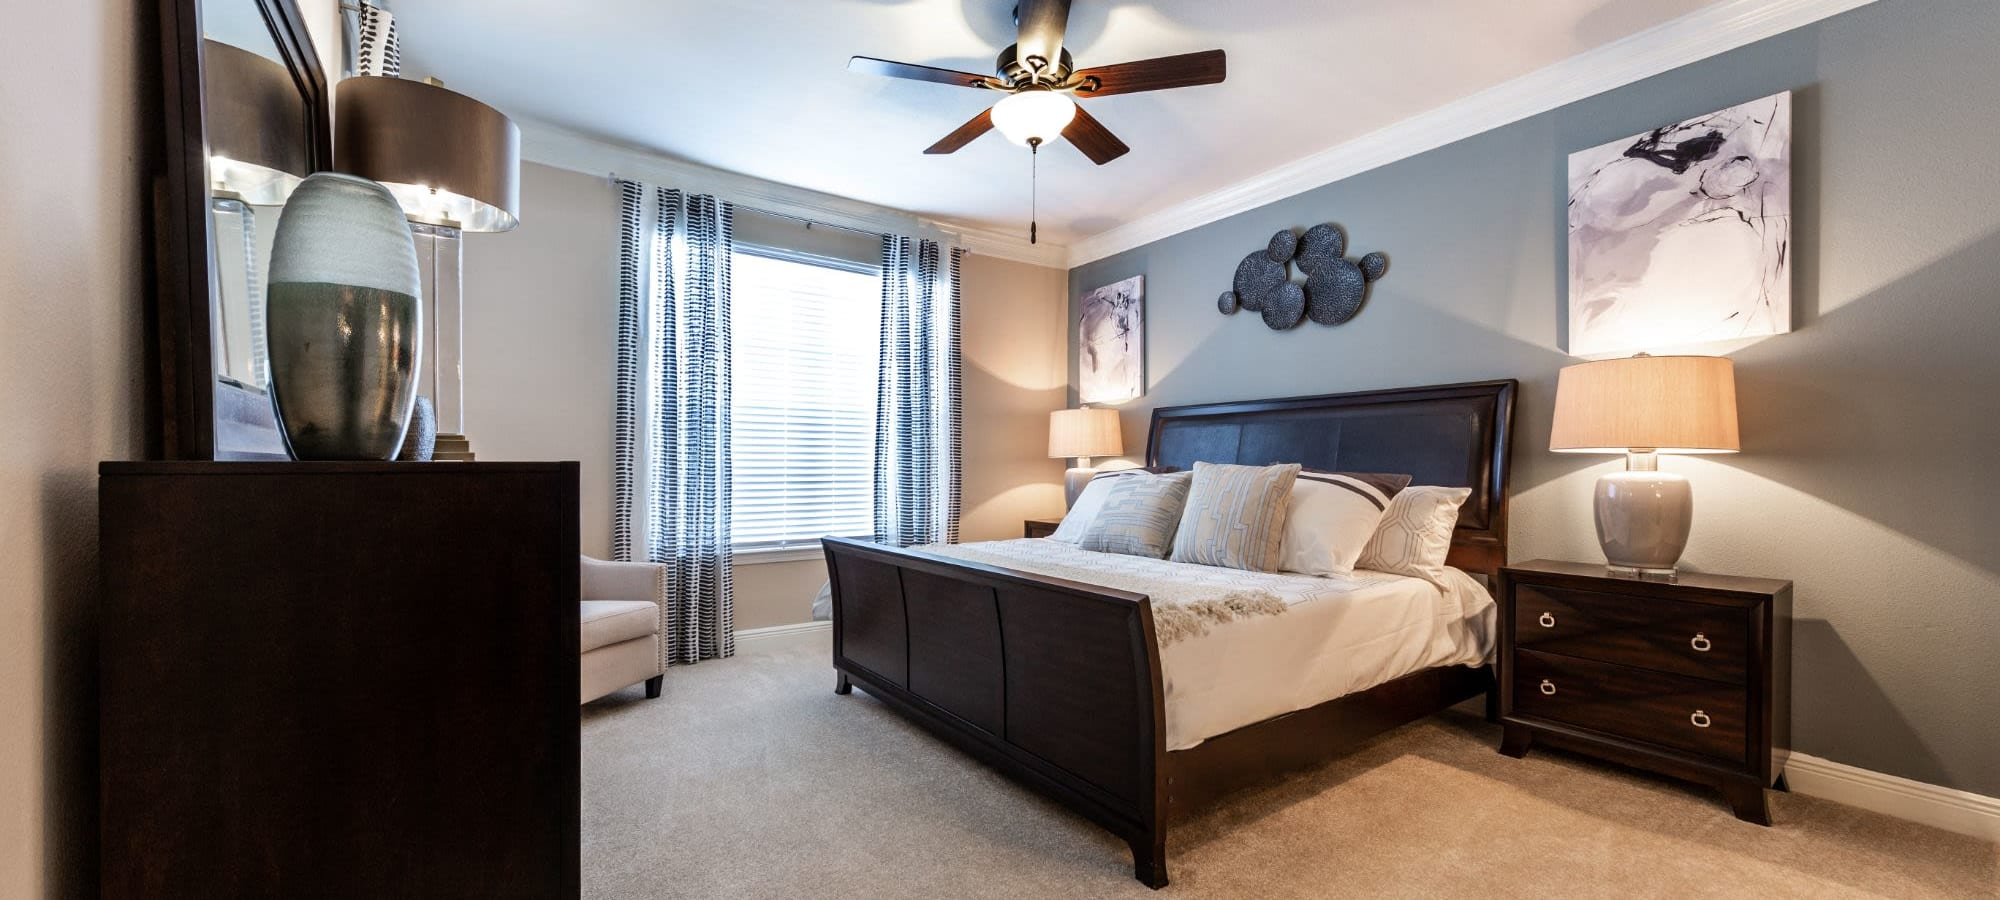 Apply to live at Marquis on Pin Oak in Houston, Texas